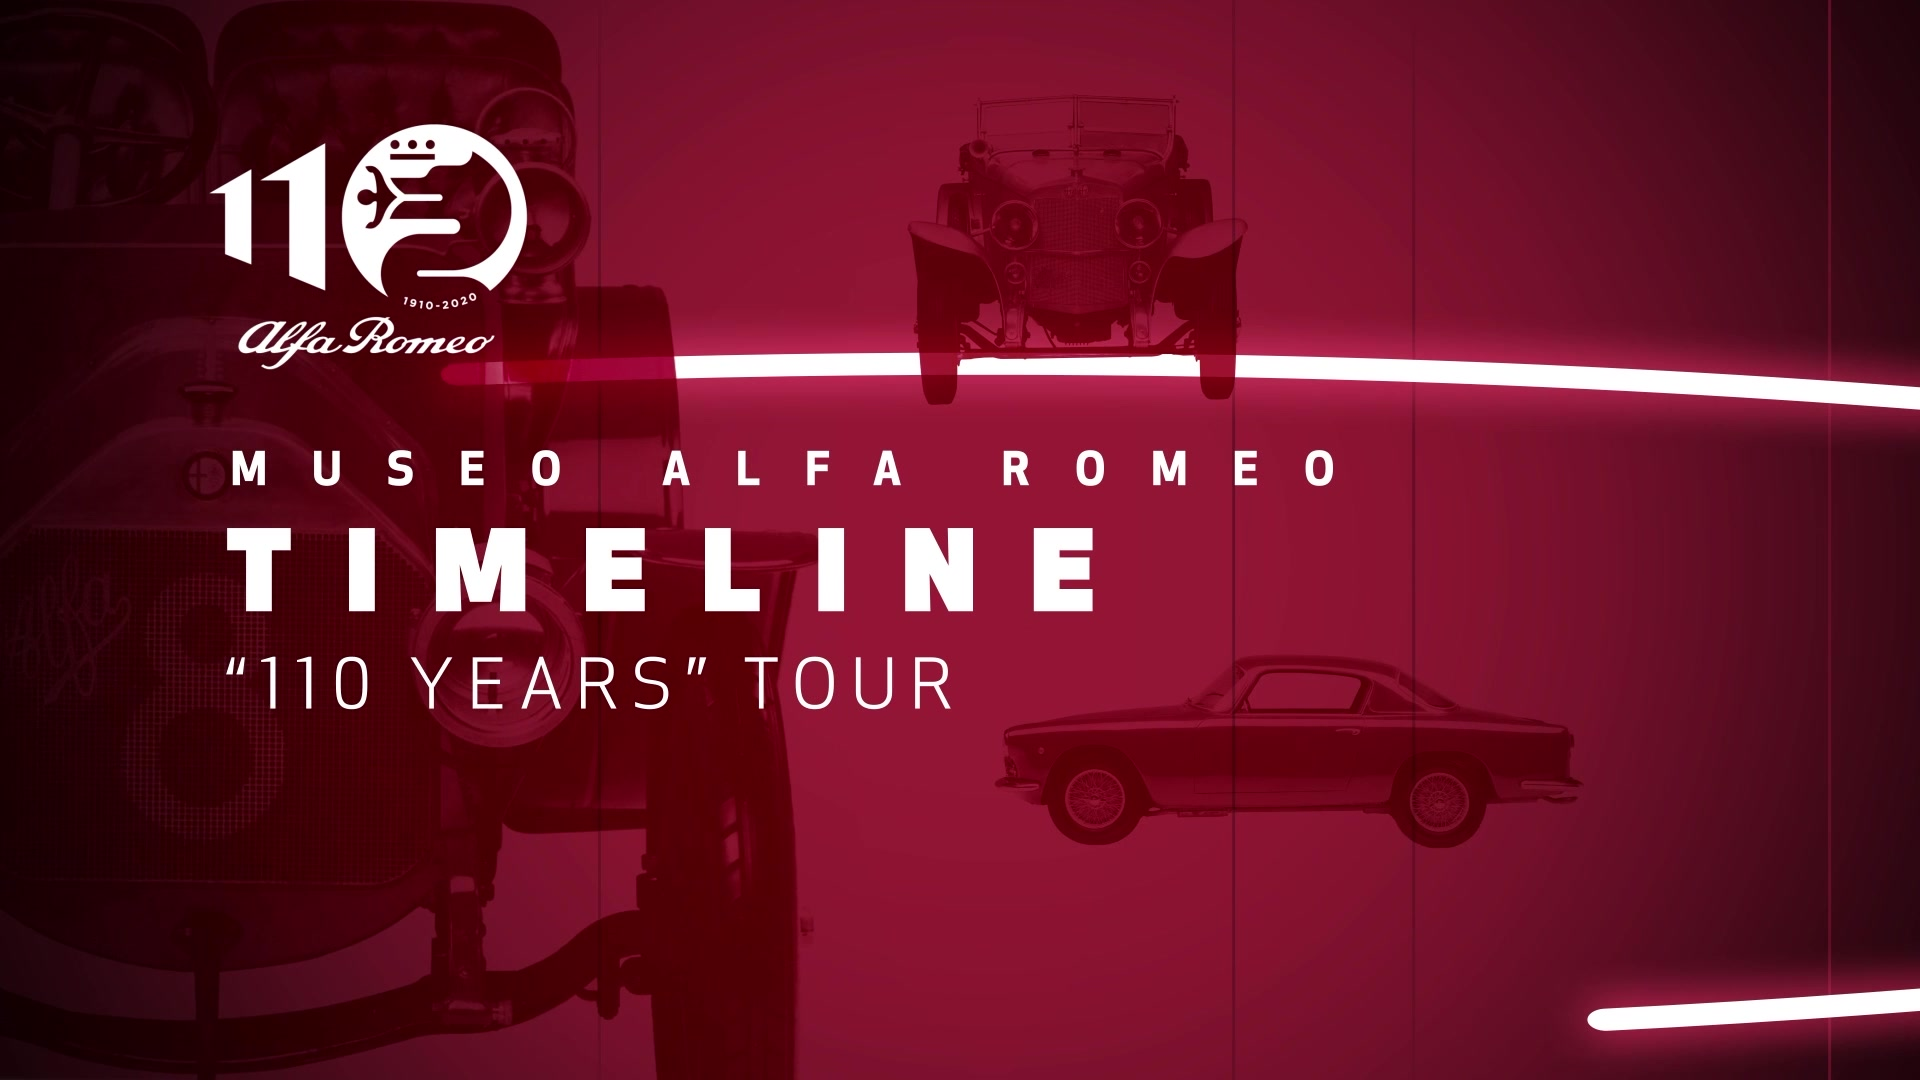 Tour 110 years - Timeline